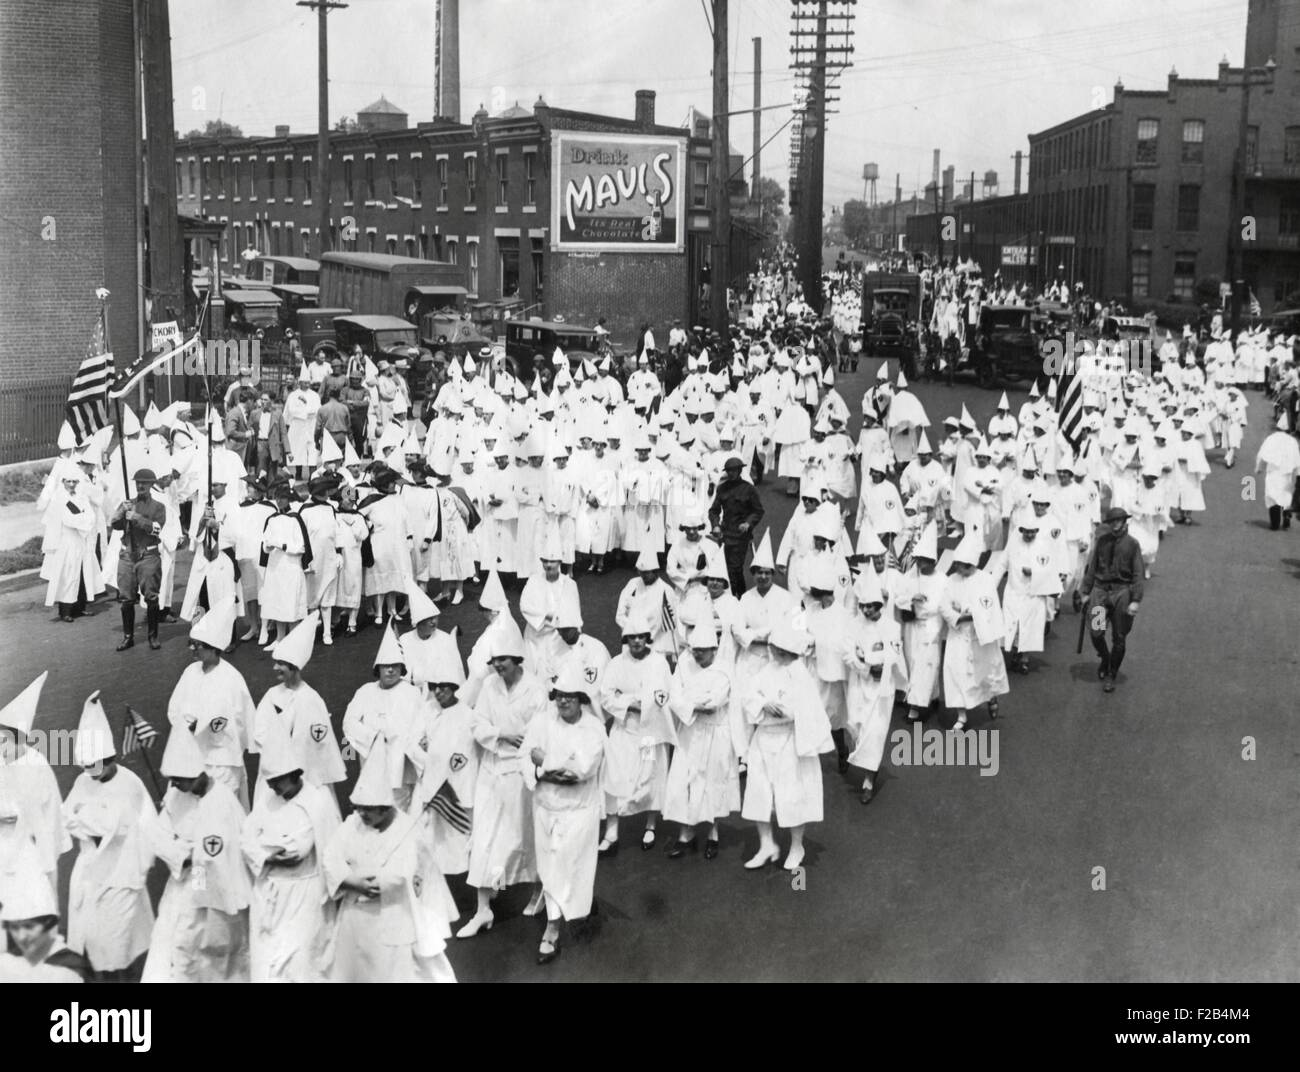 Ku Klux Klan parade in an unidentified American city. In the 1920s the Klan presented itself as a fraternal organization, - Stock Image